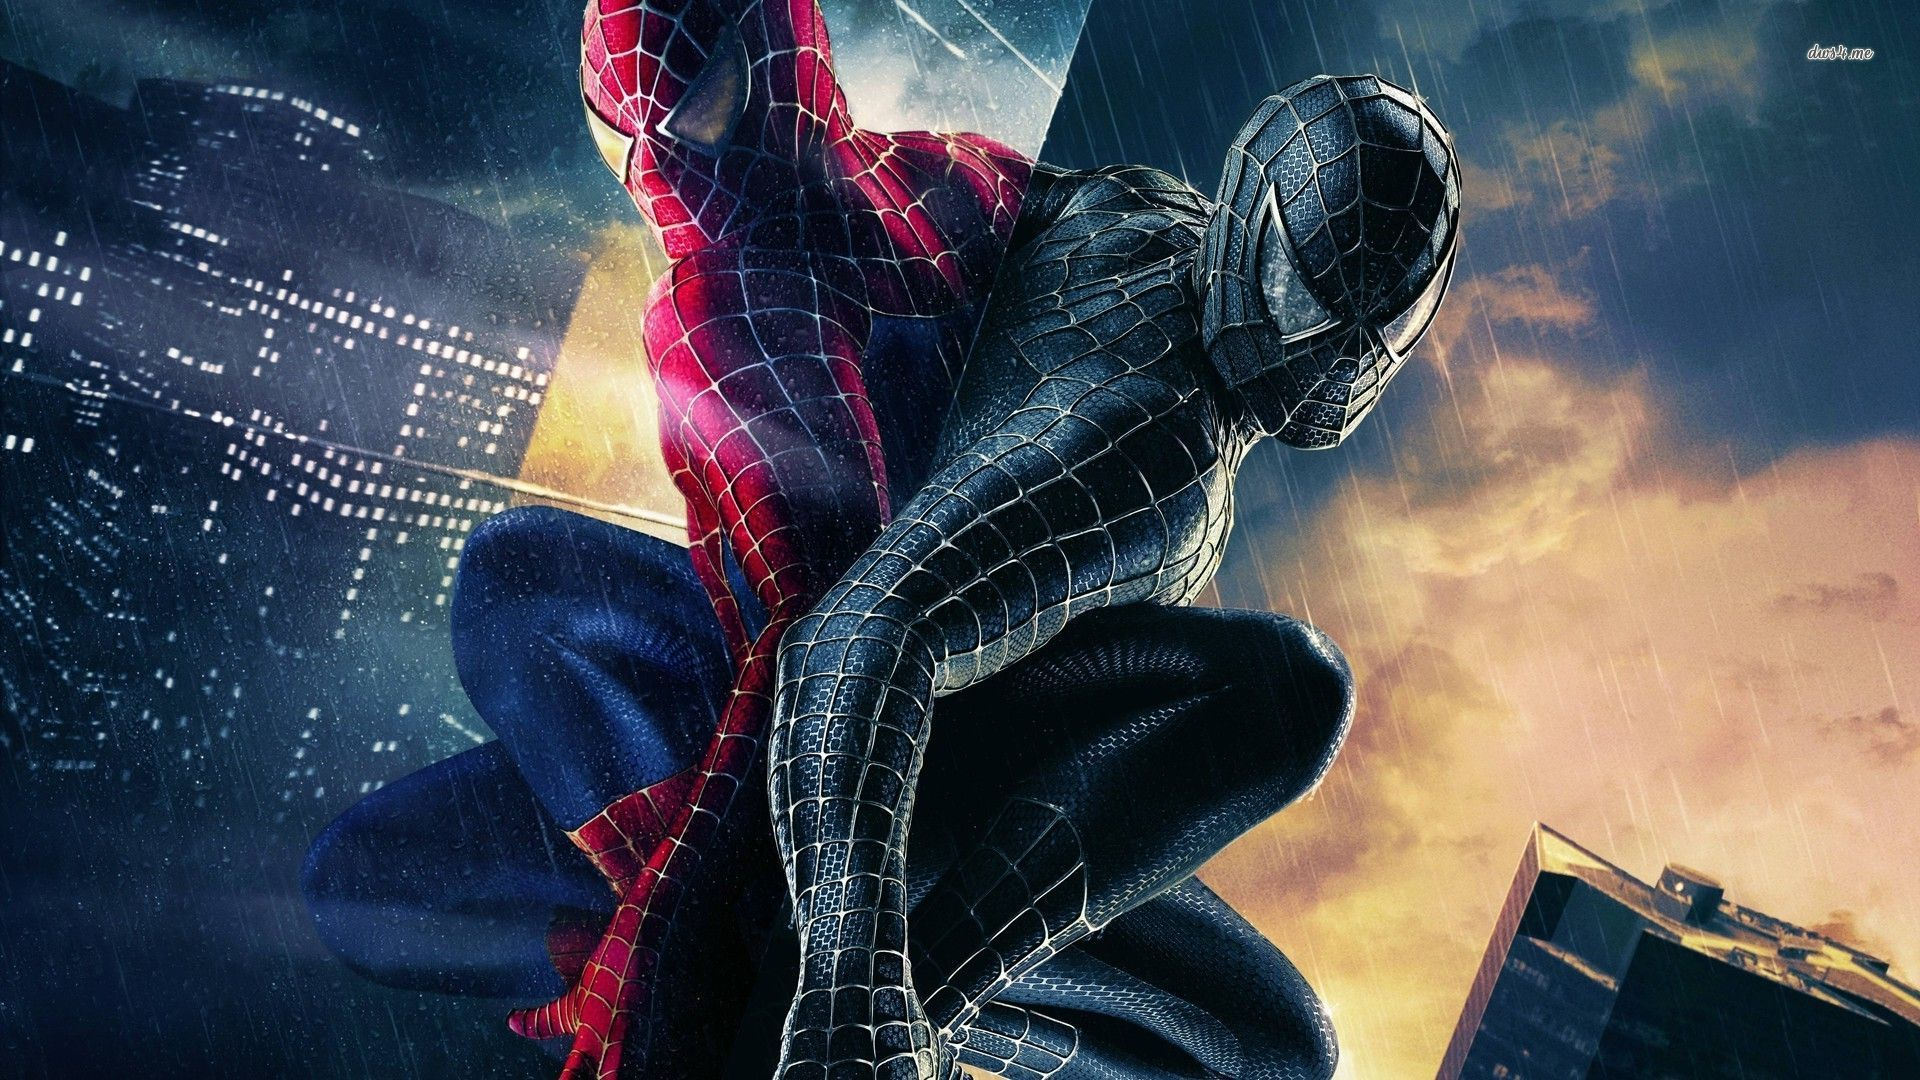 spider man 3 pic spider man 3 pic 1920x1080